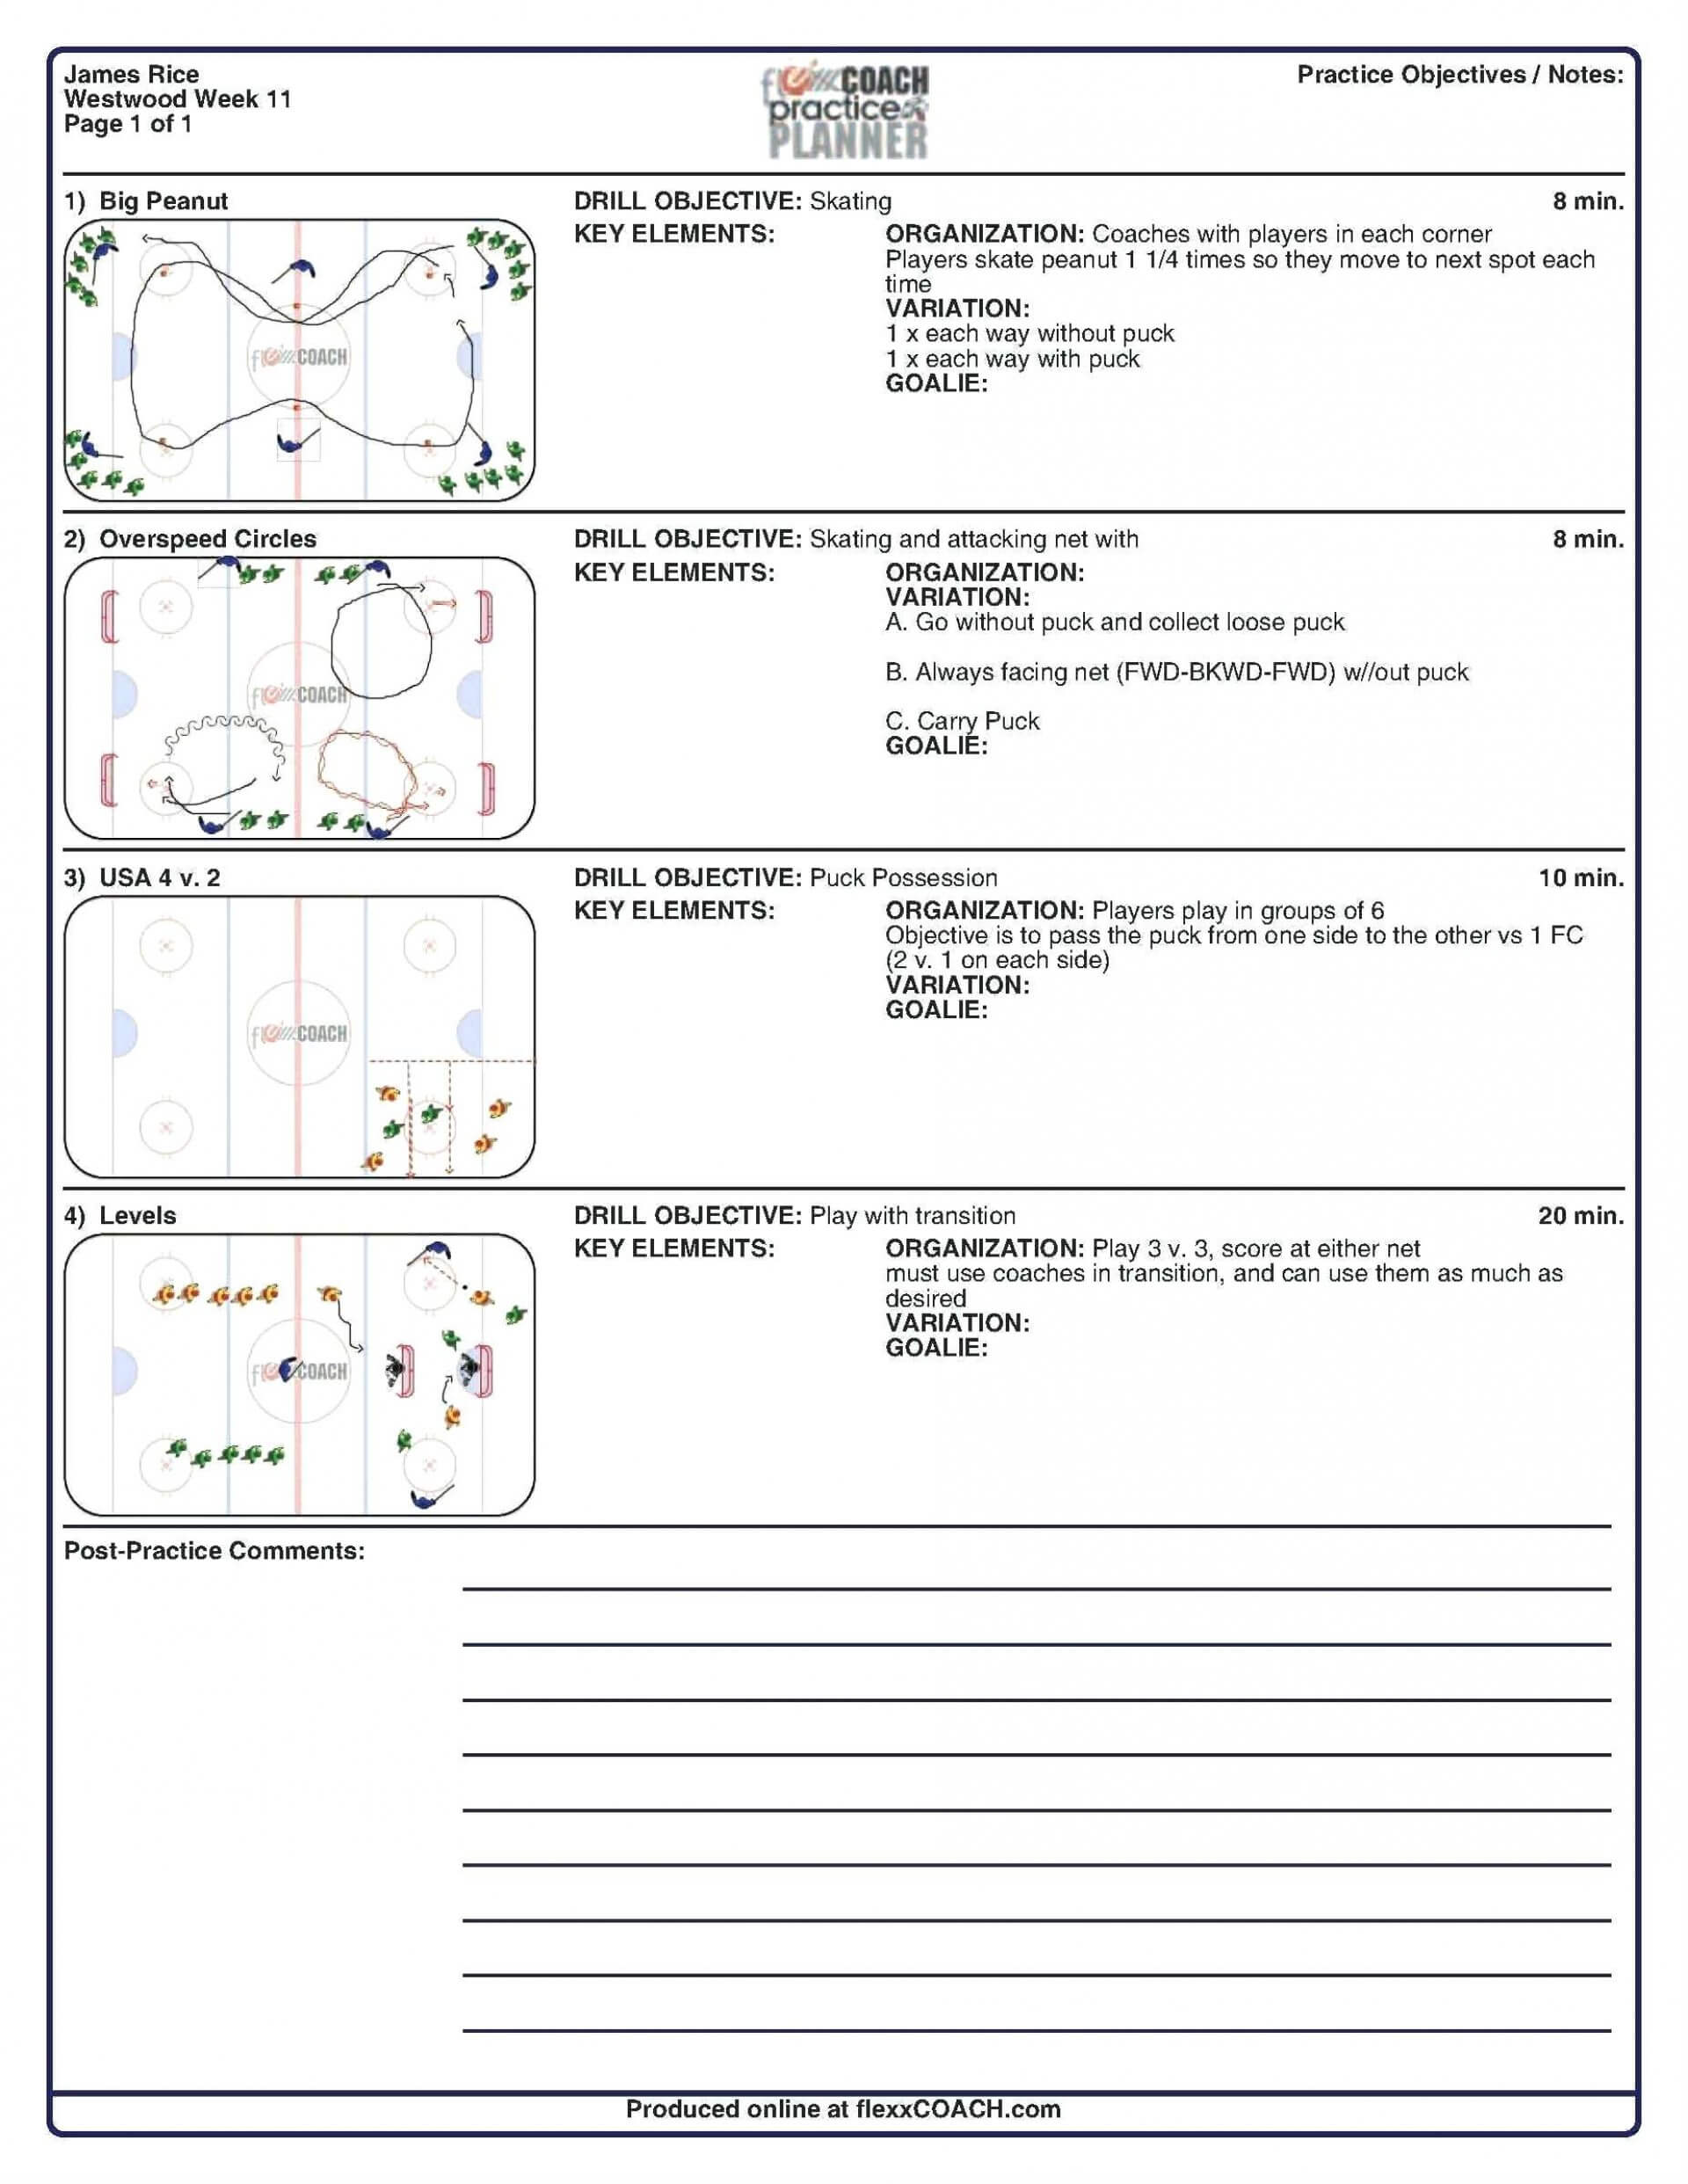 010 Basketball Practice Plan Template 4Amwotmo Ideas Within Blank Hockey Practice Plan Template